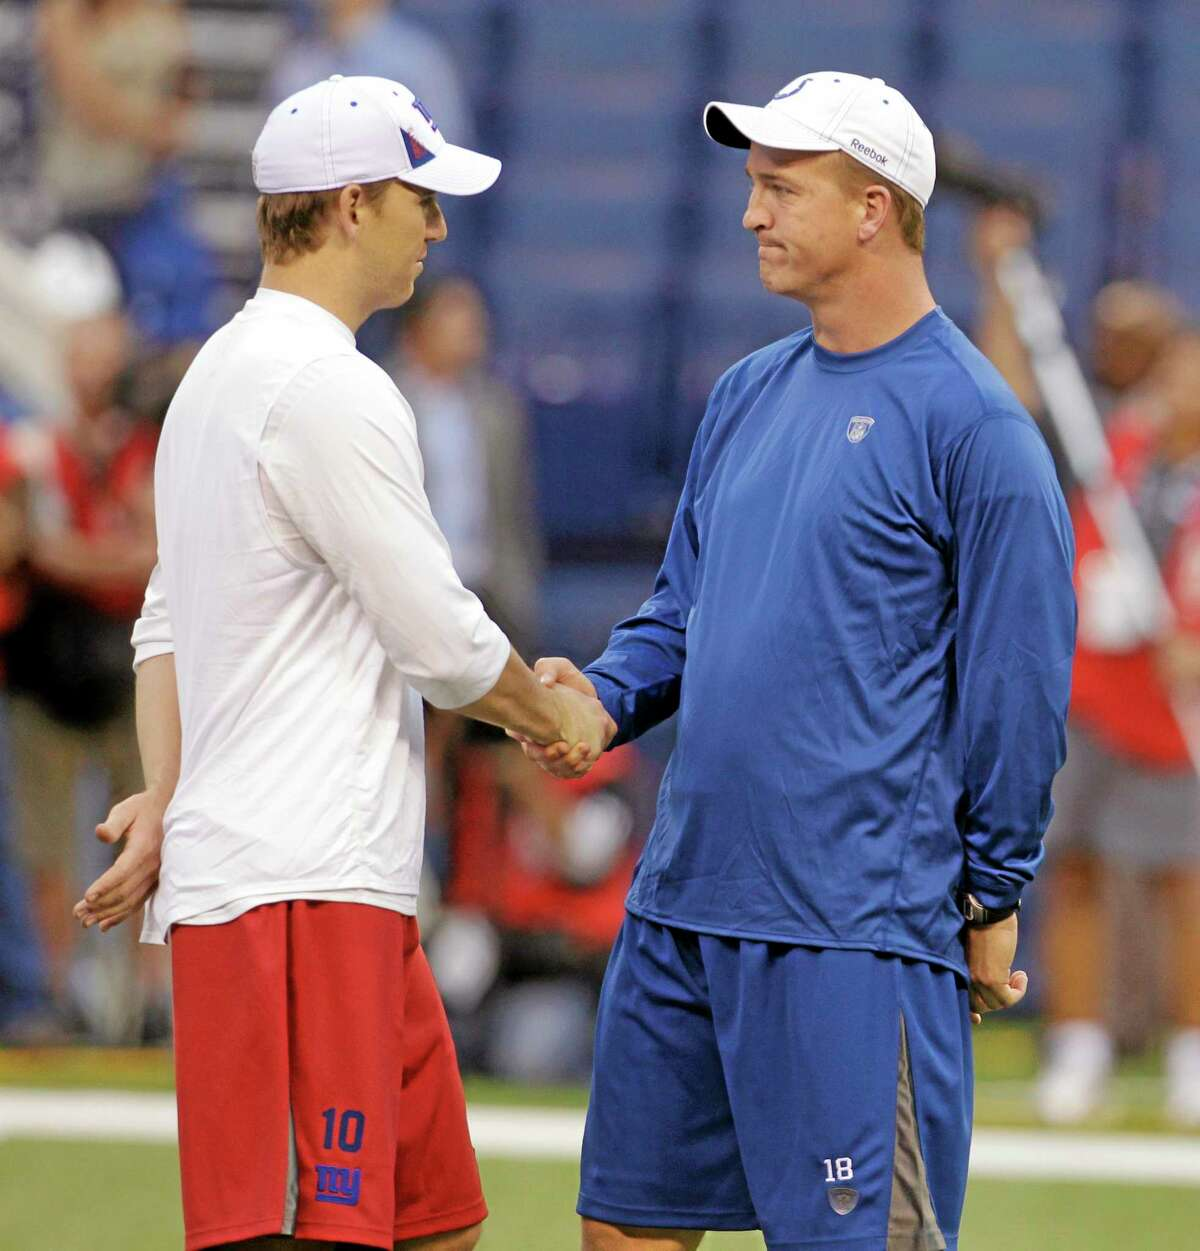 Eli Manning, left, shakes hands with brother Peyton before a 2010 game between the Giants and Colts in Indianapolis.